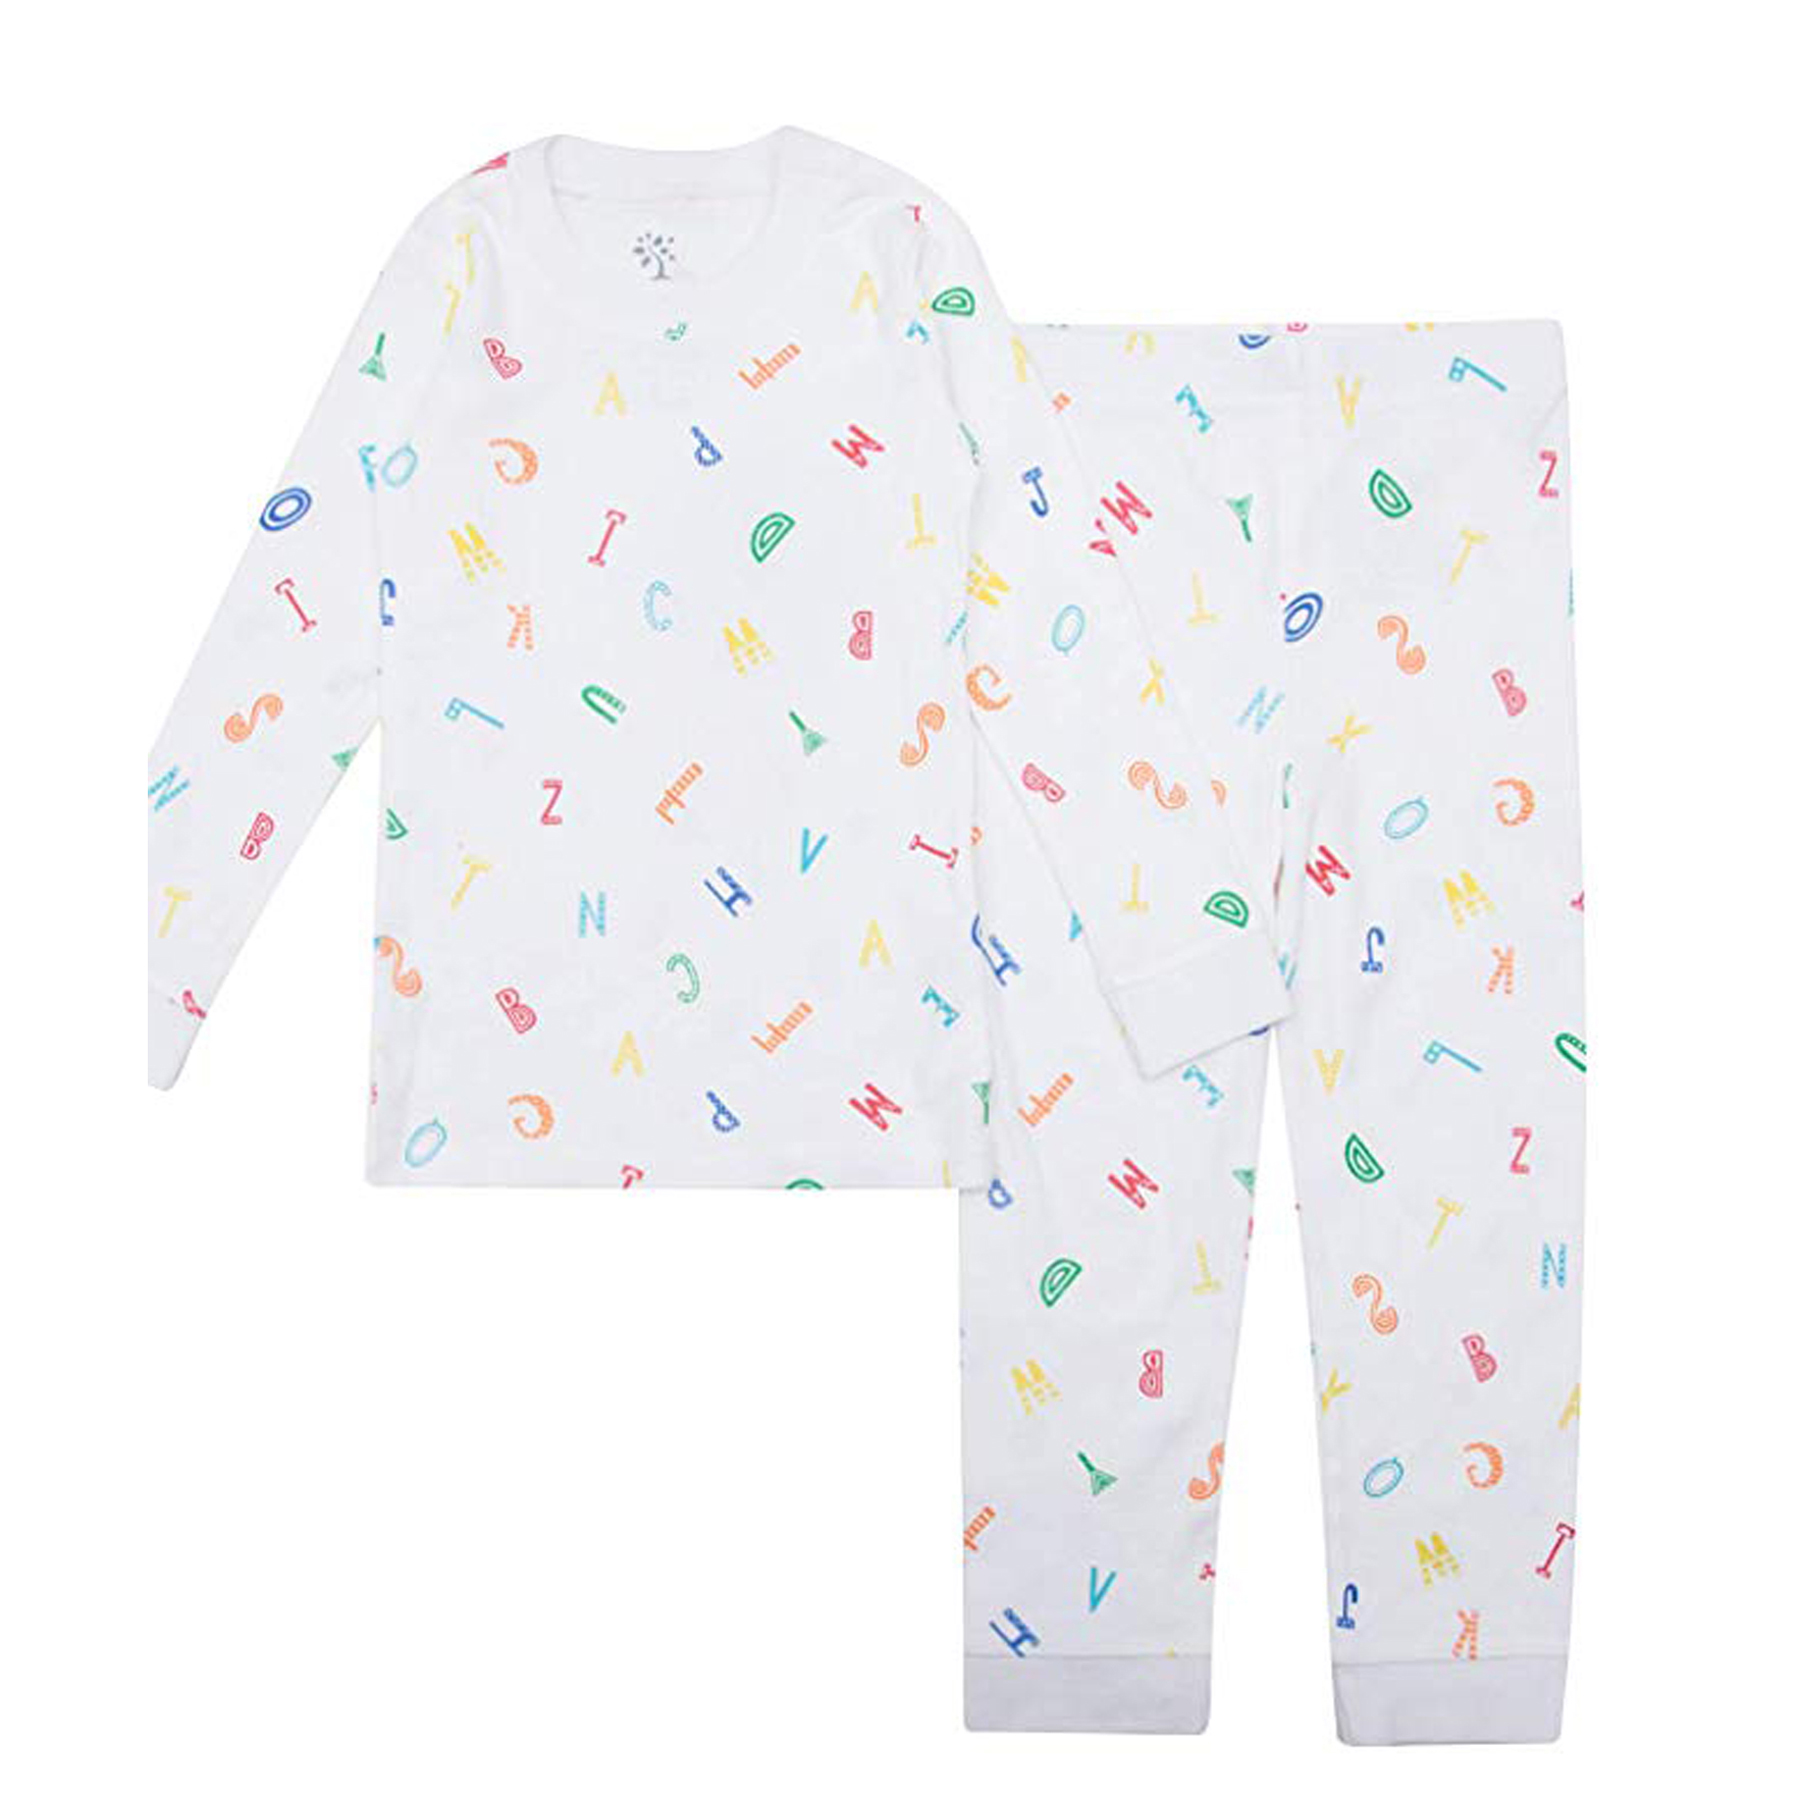 Cheap Christmas Gifts for Kids: Gentle Organics 100% Organic Cotton Unisex Pajamas